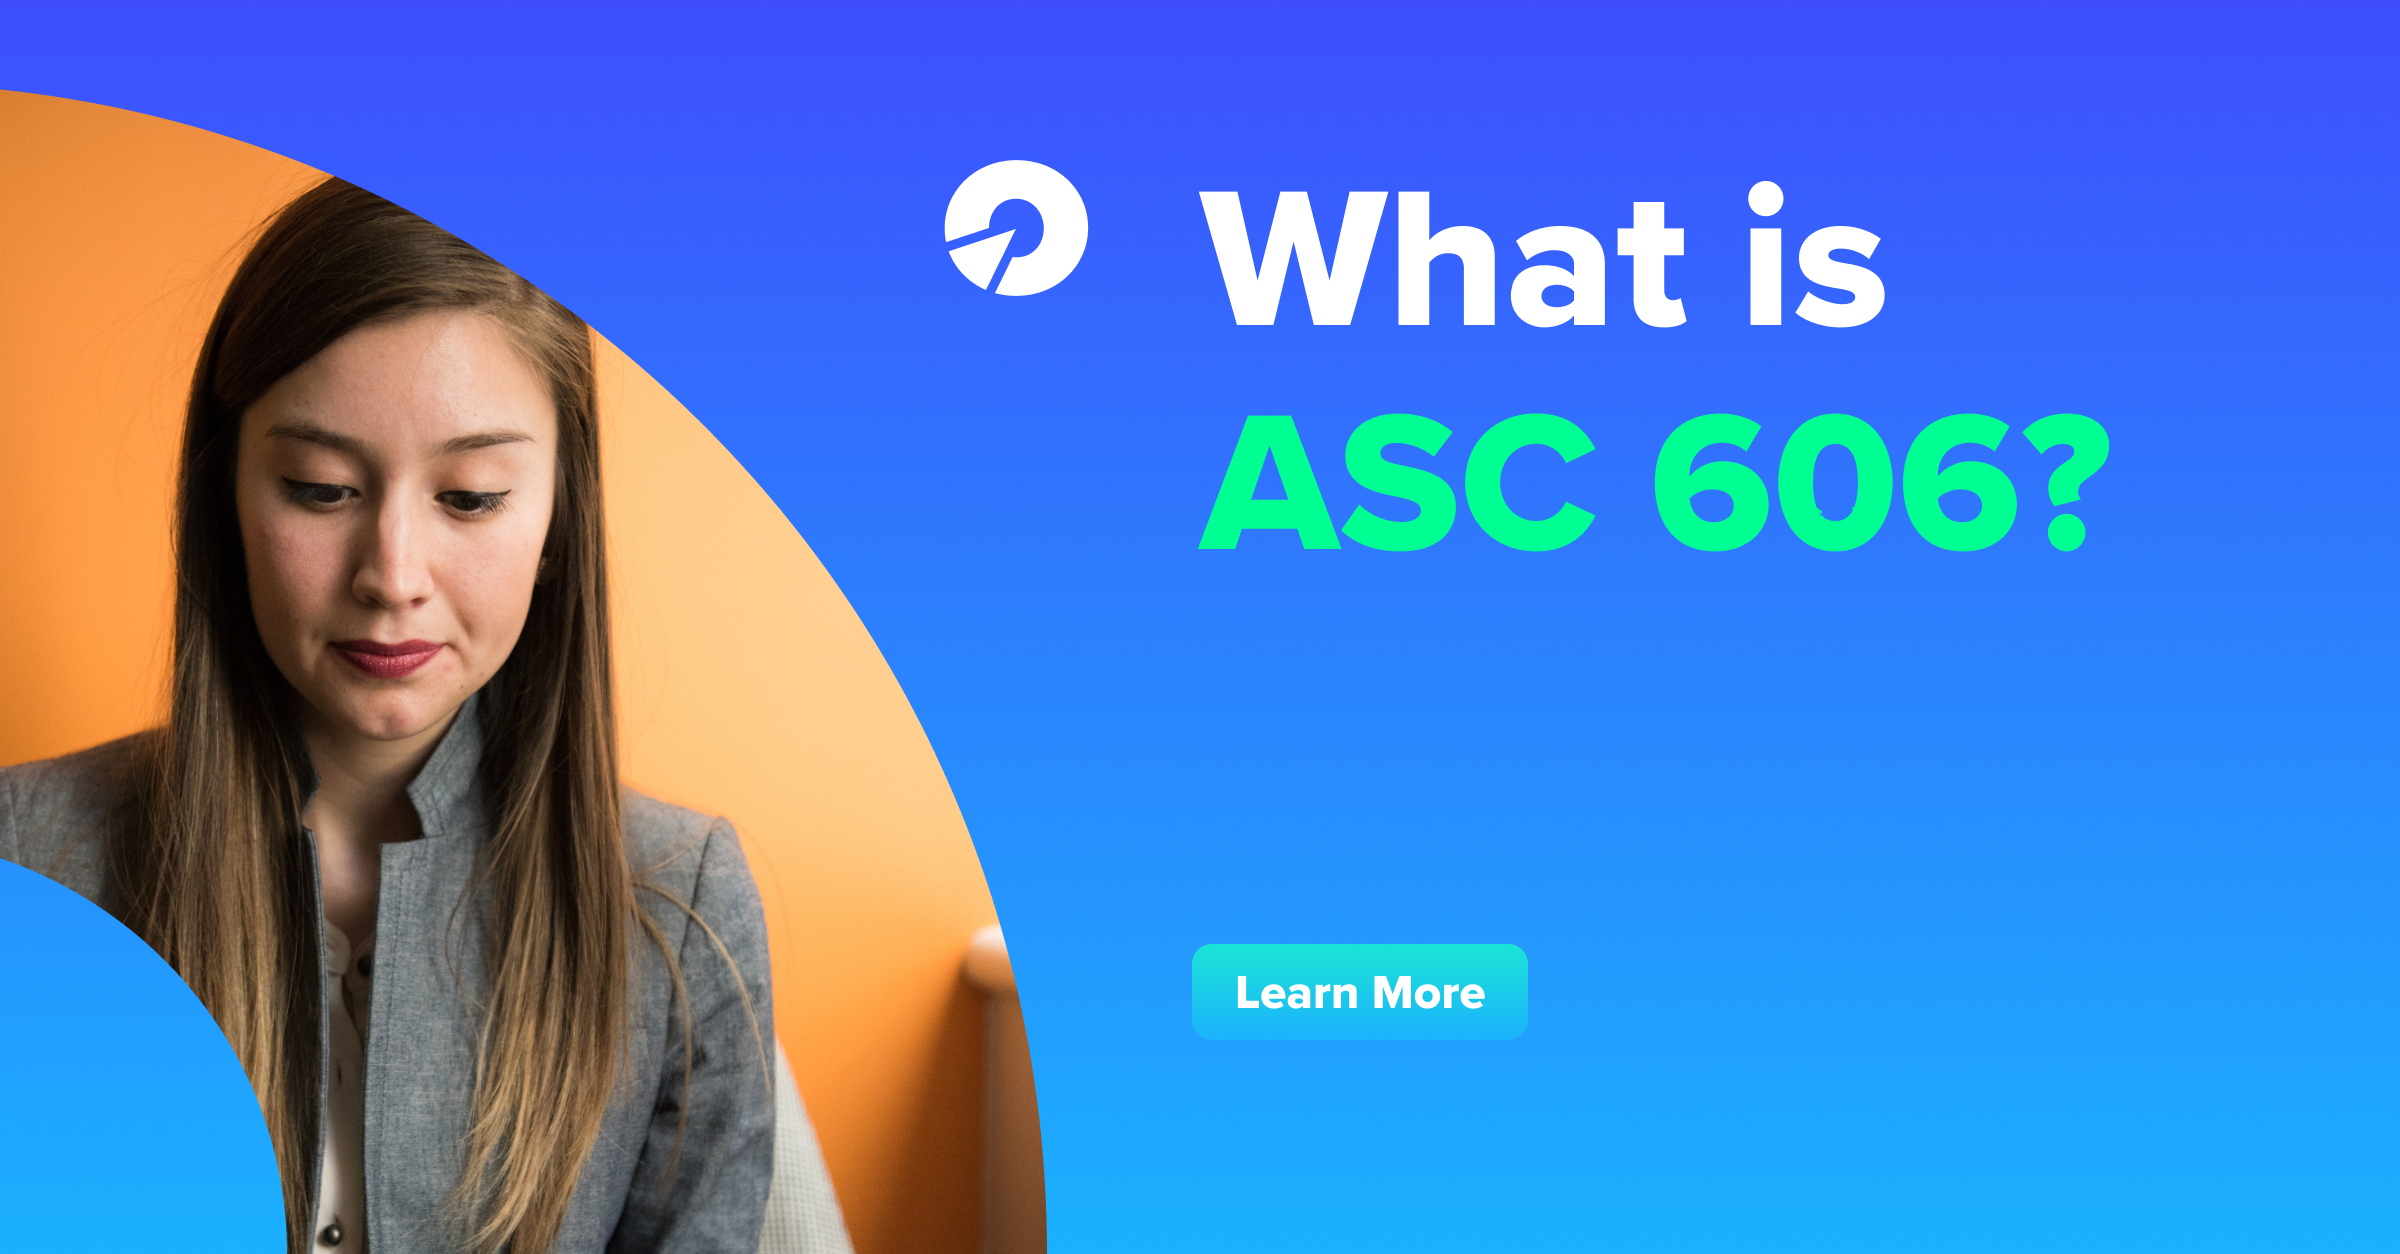 What is ASC 606?